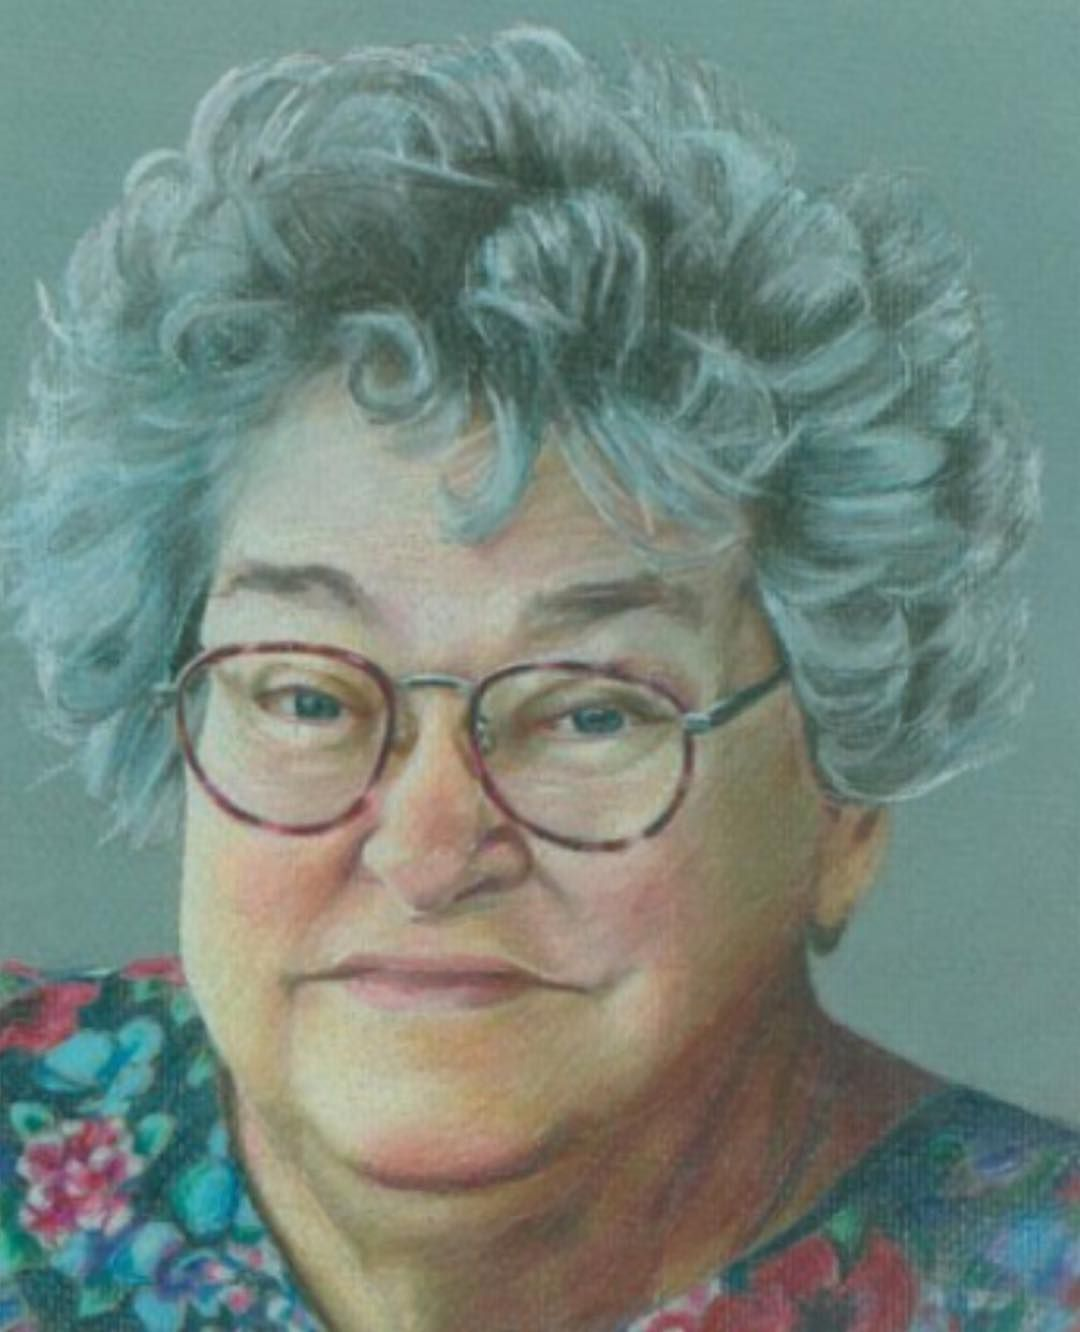 It looks a little fuzzy but here is a colored pencil illustration I did of my grandmother after she passed away #coloredpencil #coloredpencils #coloredpencildrawing #granndmother #prismacolor #art #artist #artsy #drawing #portrait #portraits #family #rip #talentedpeopleinc #illustration #illustrator by orr4fan